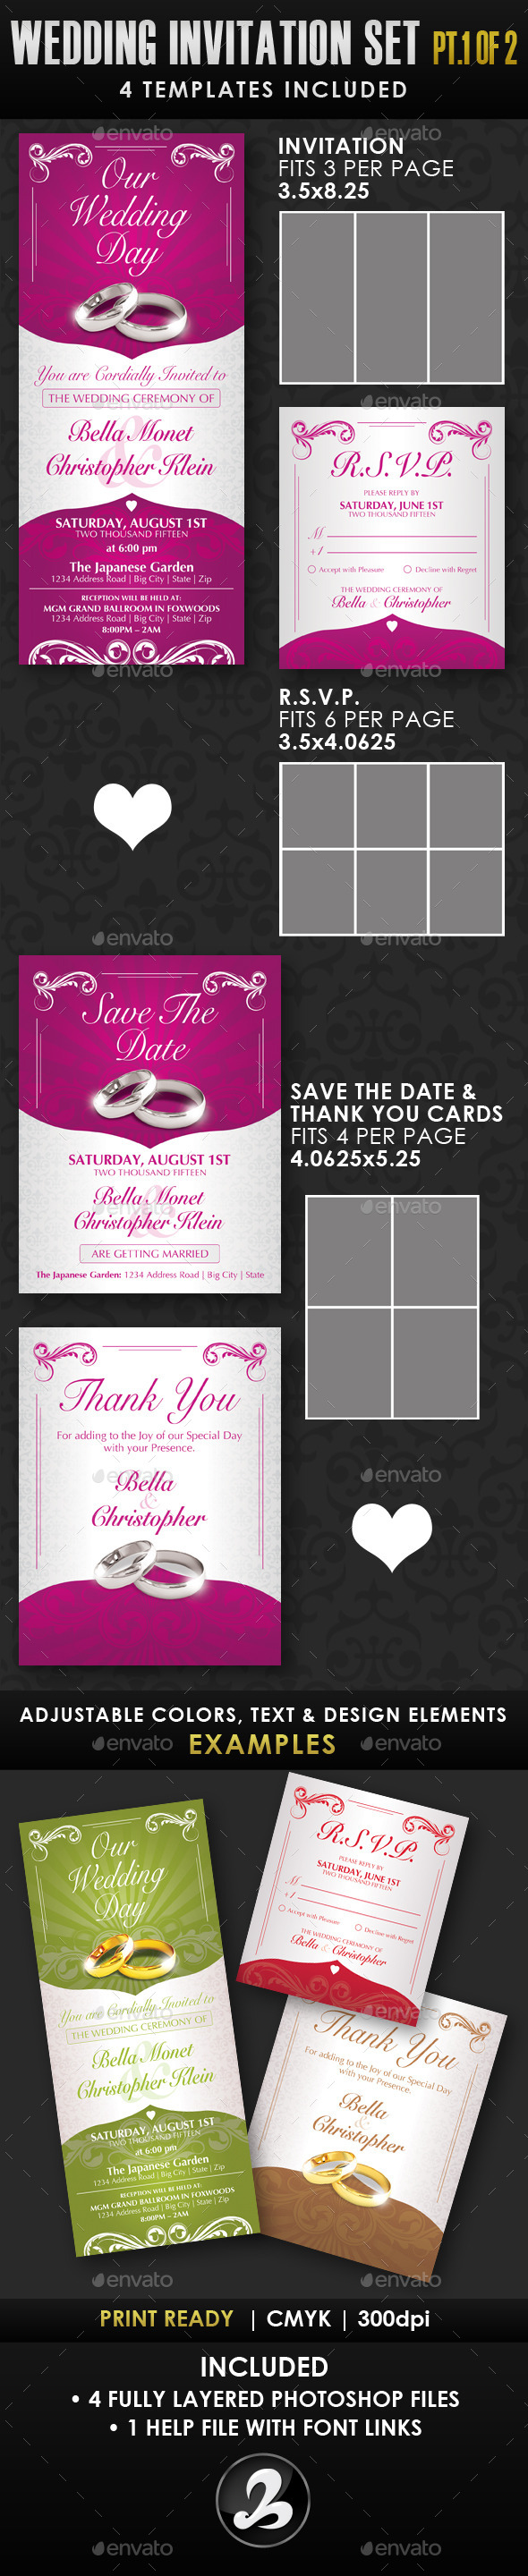 GraphicRiver Wedding Invitation Template Set Vol.1a 10895279